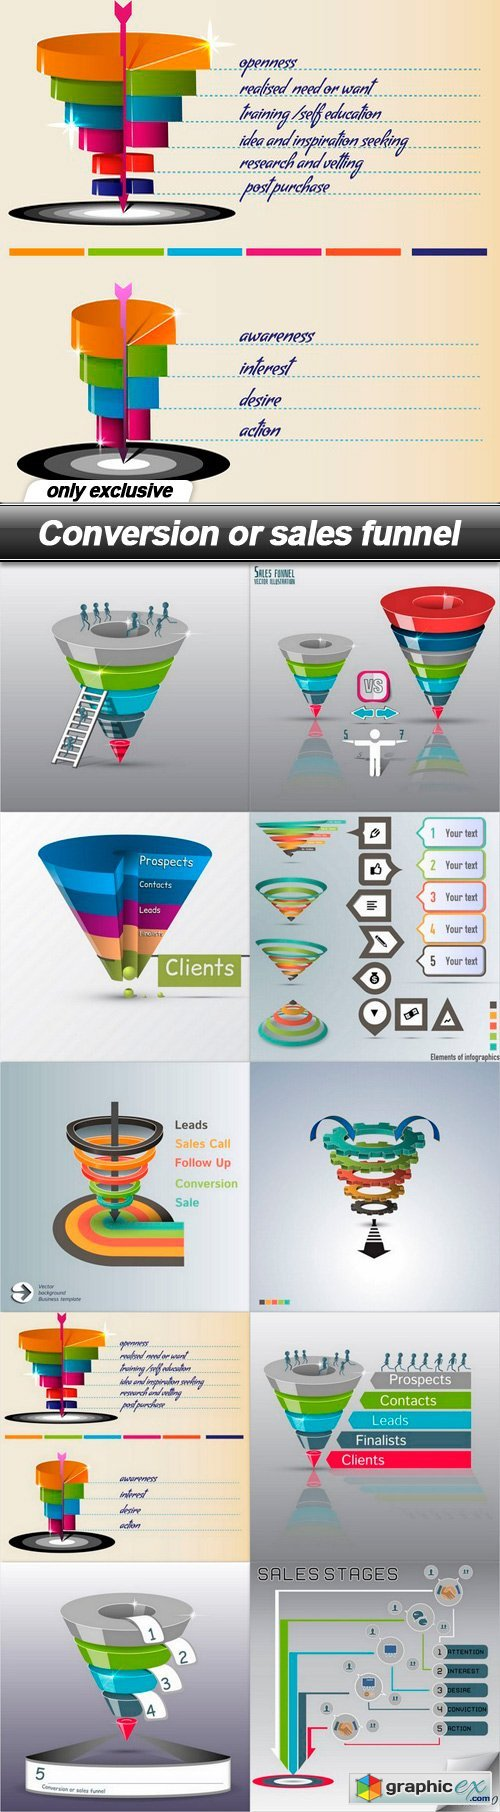 Conversion or sales funnel - 10 EPS